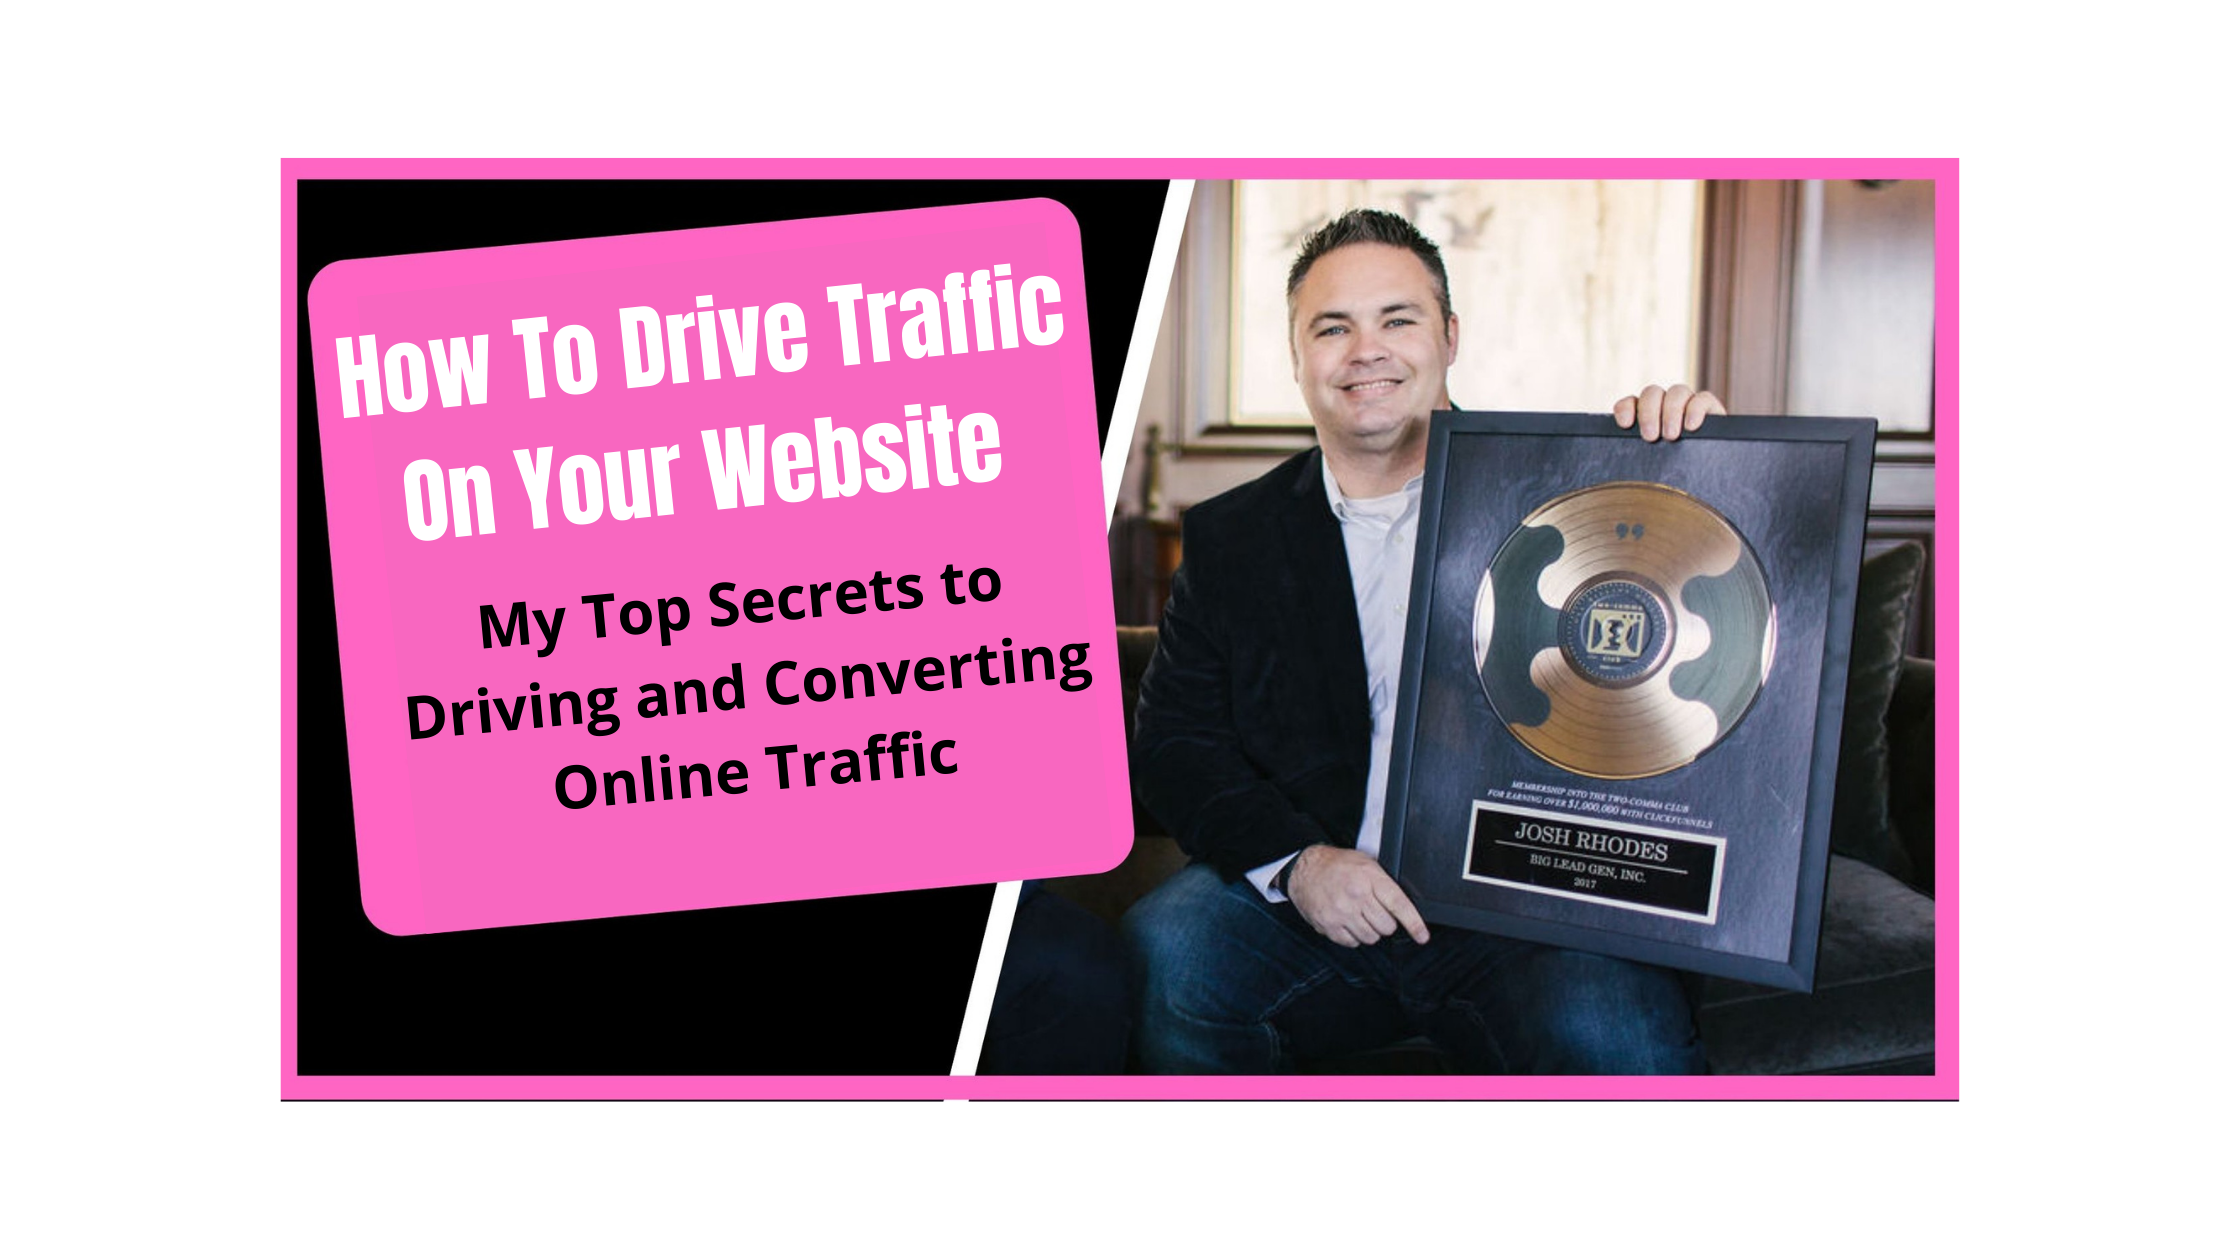 how-to-drive-traffic-on-your-website-top